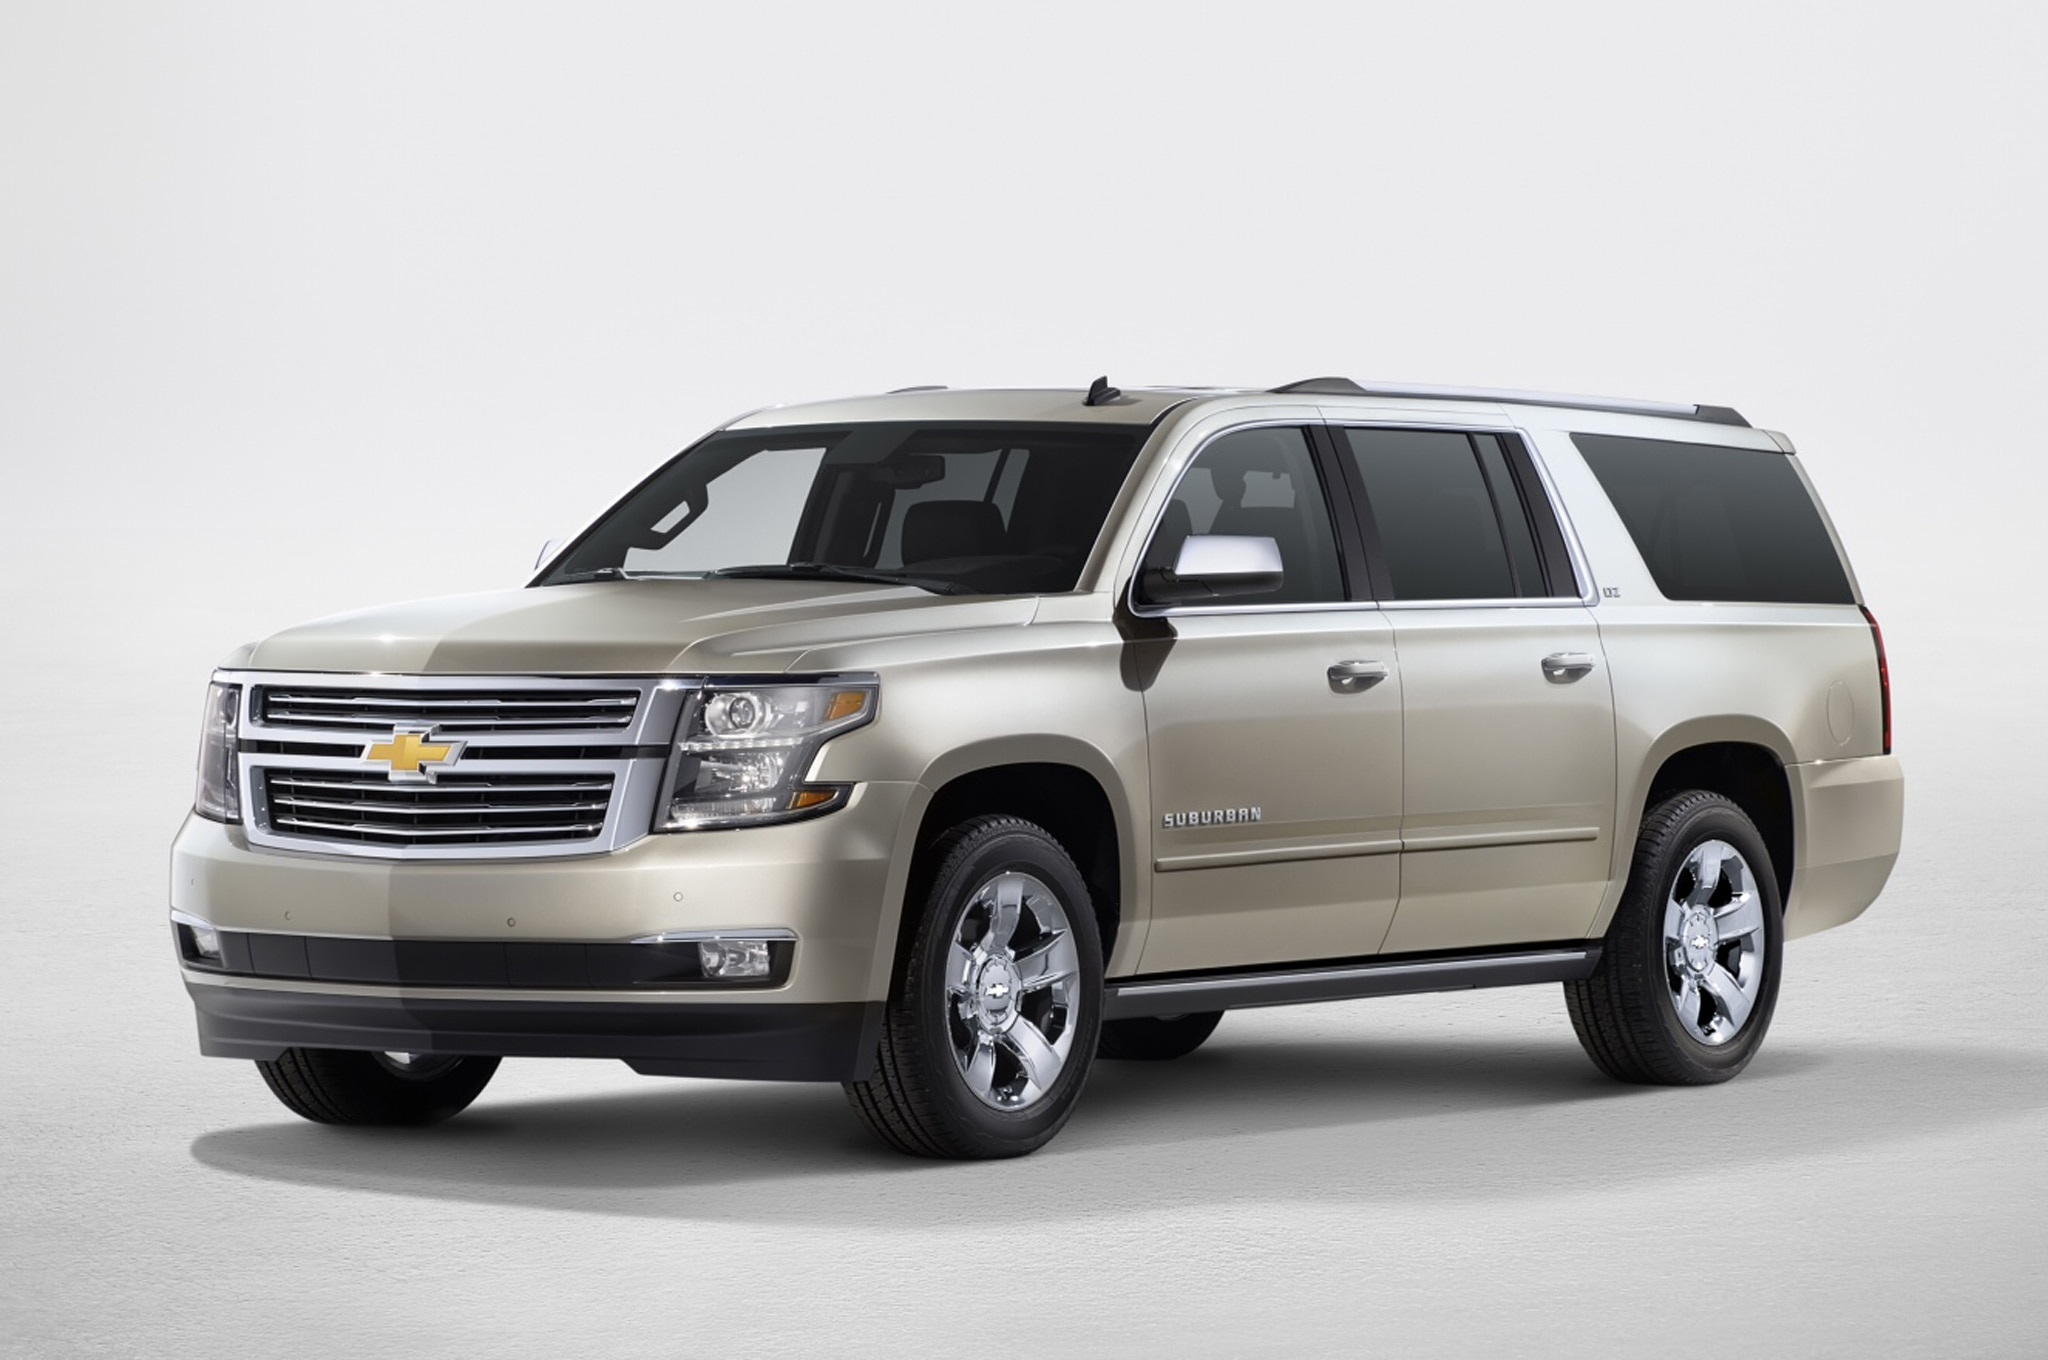 2015 Chevrolet Suburban Front View2